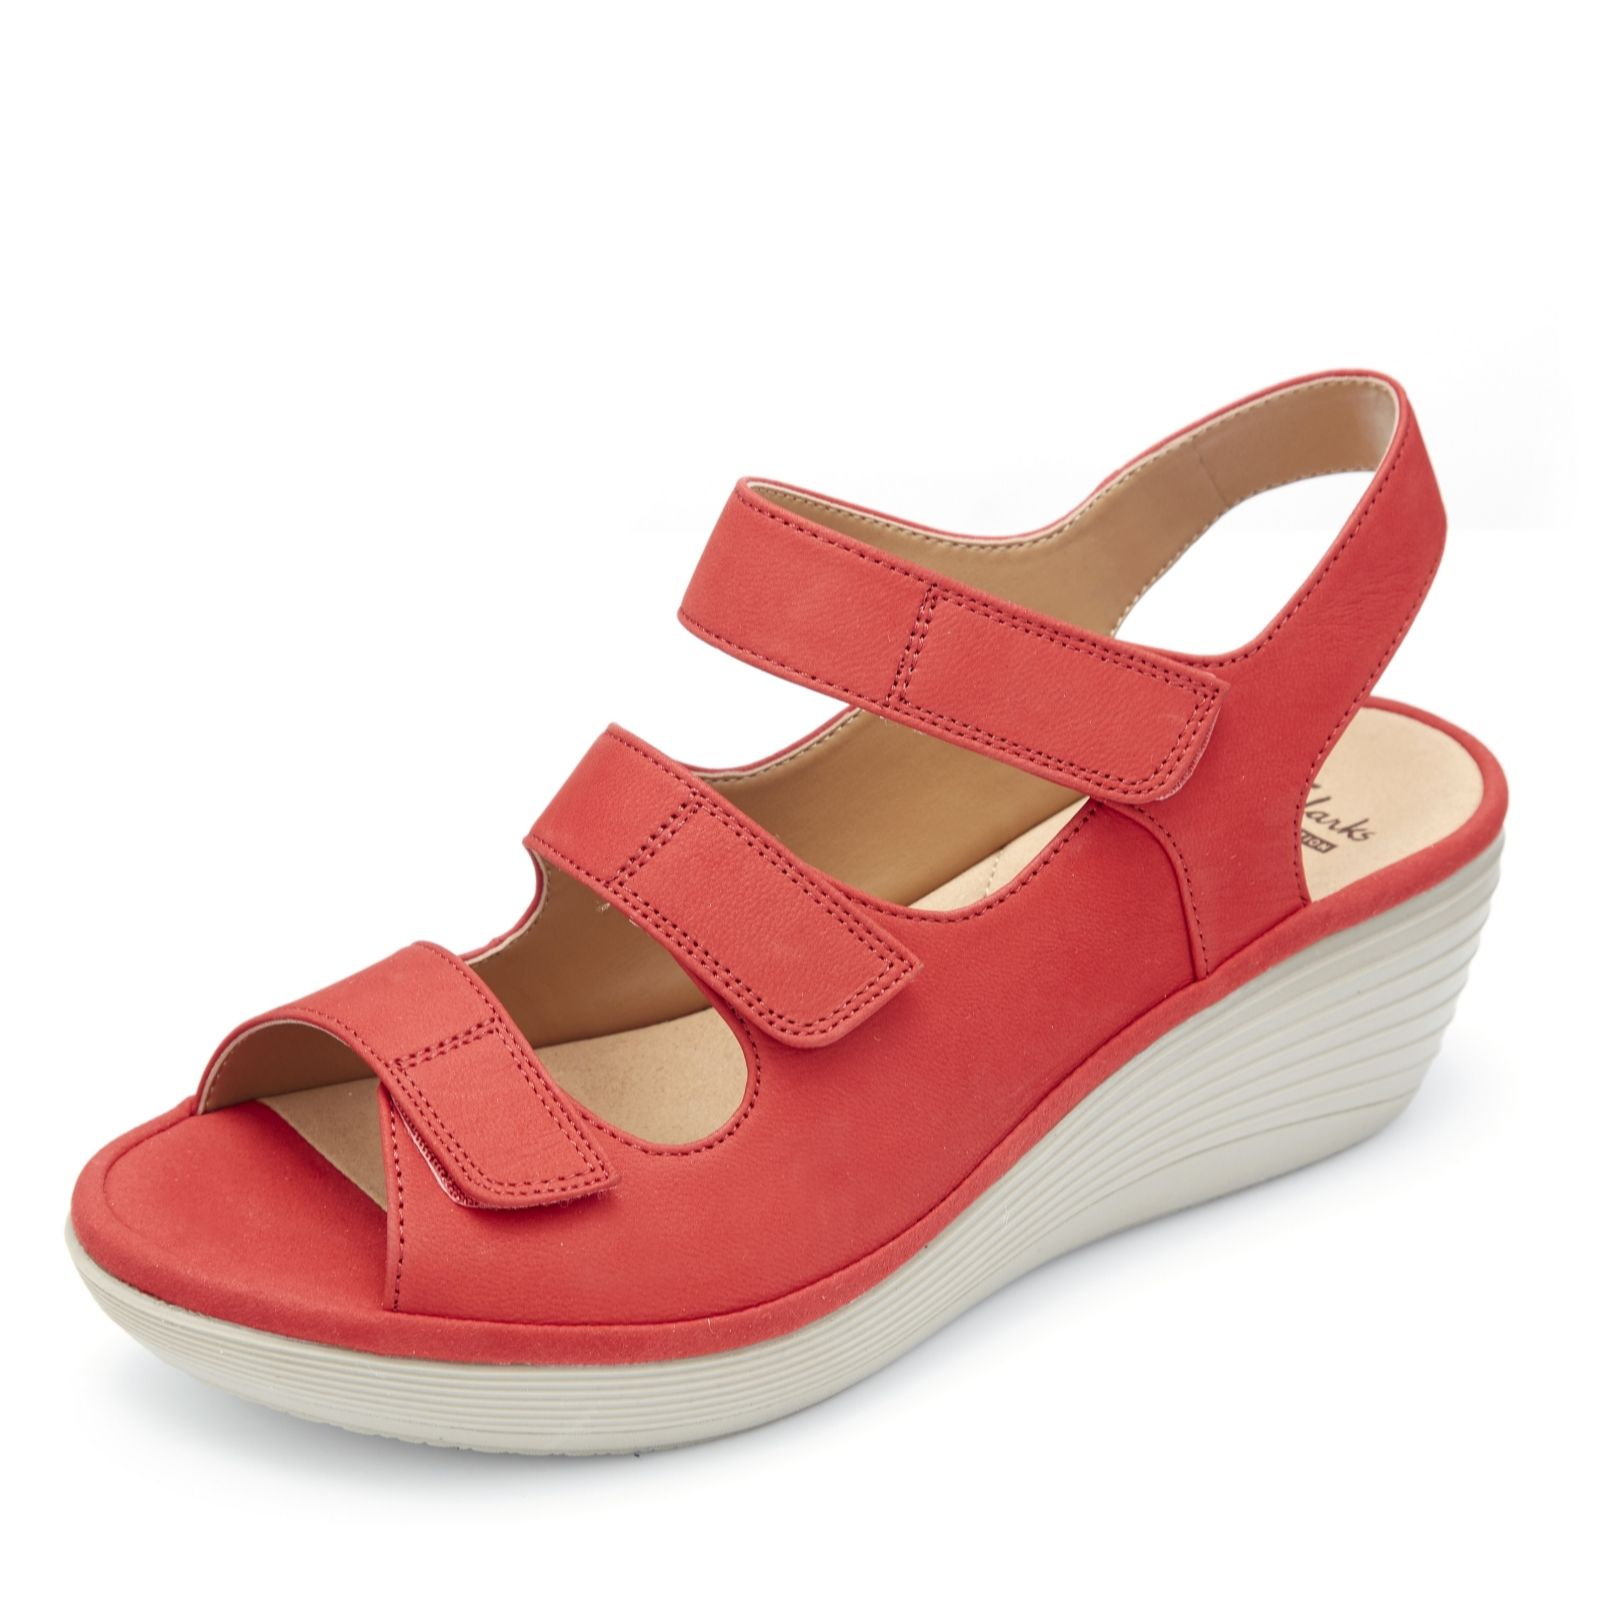 1c1483f9237 Clarks Reedly Juno Wedge Shoe with Soft Cushion Wide Fit - QVC UK